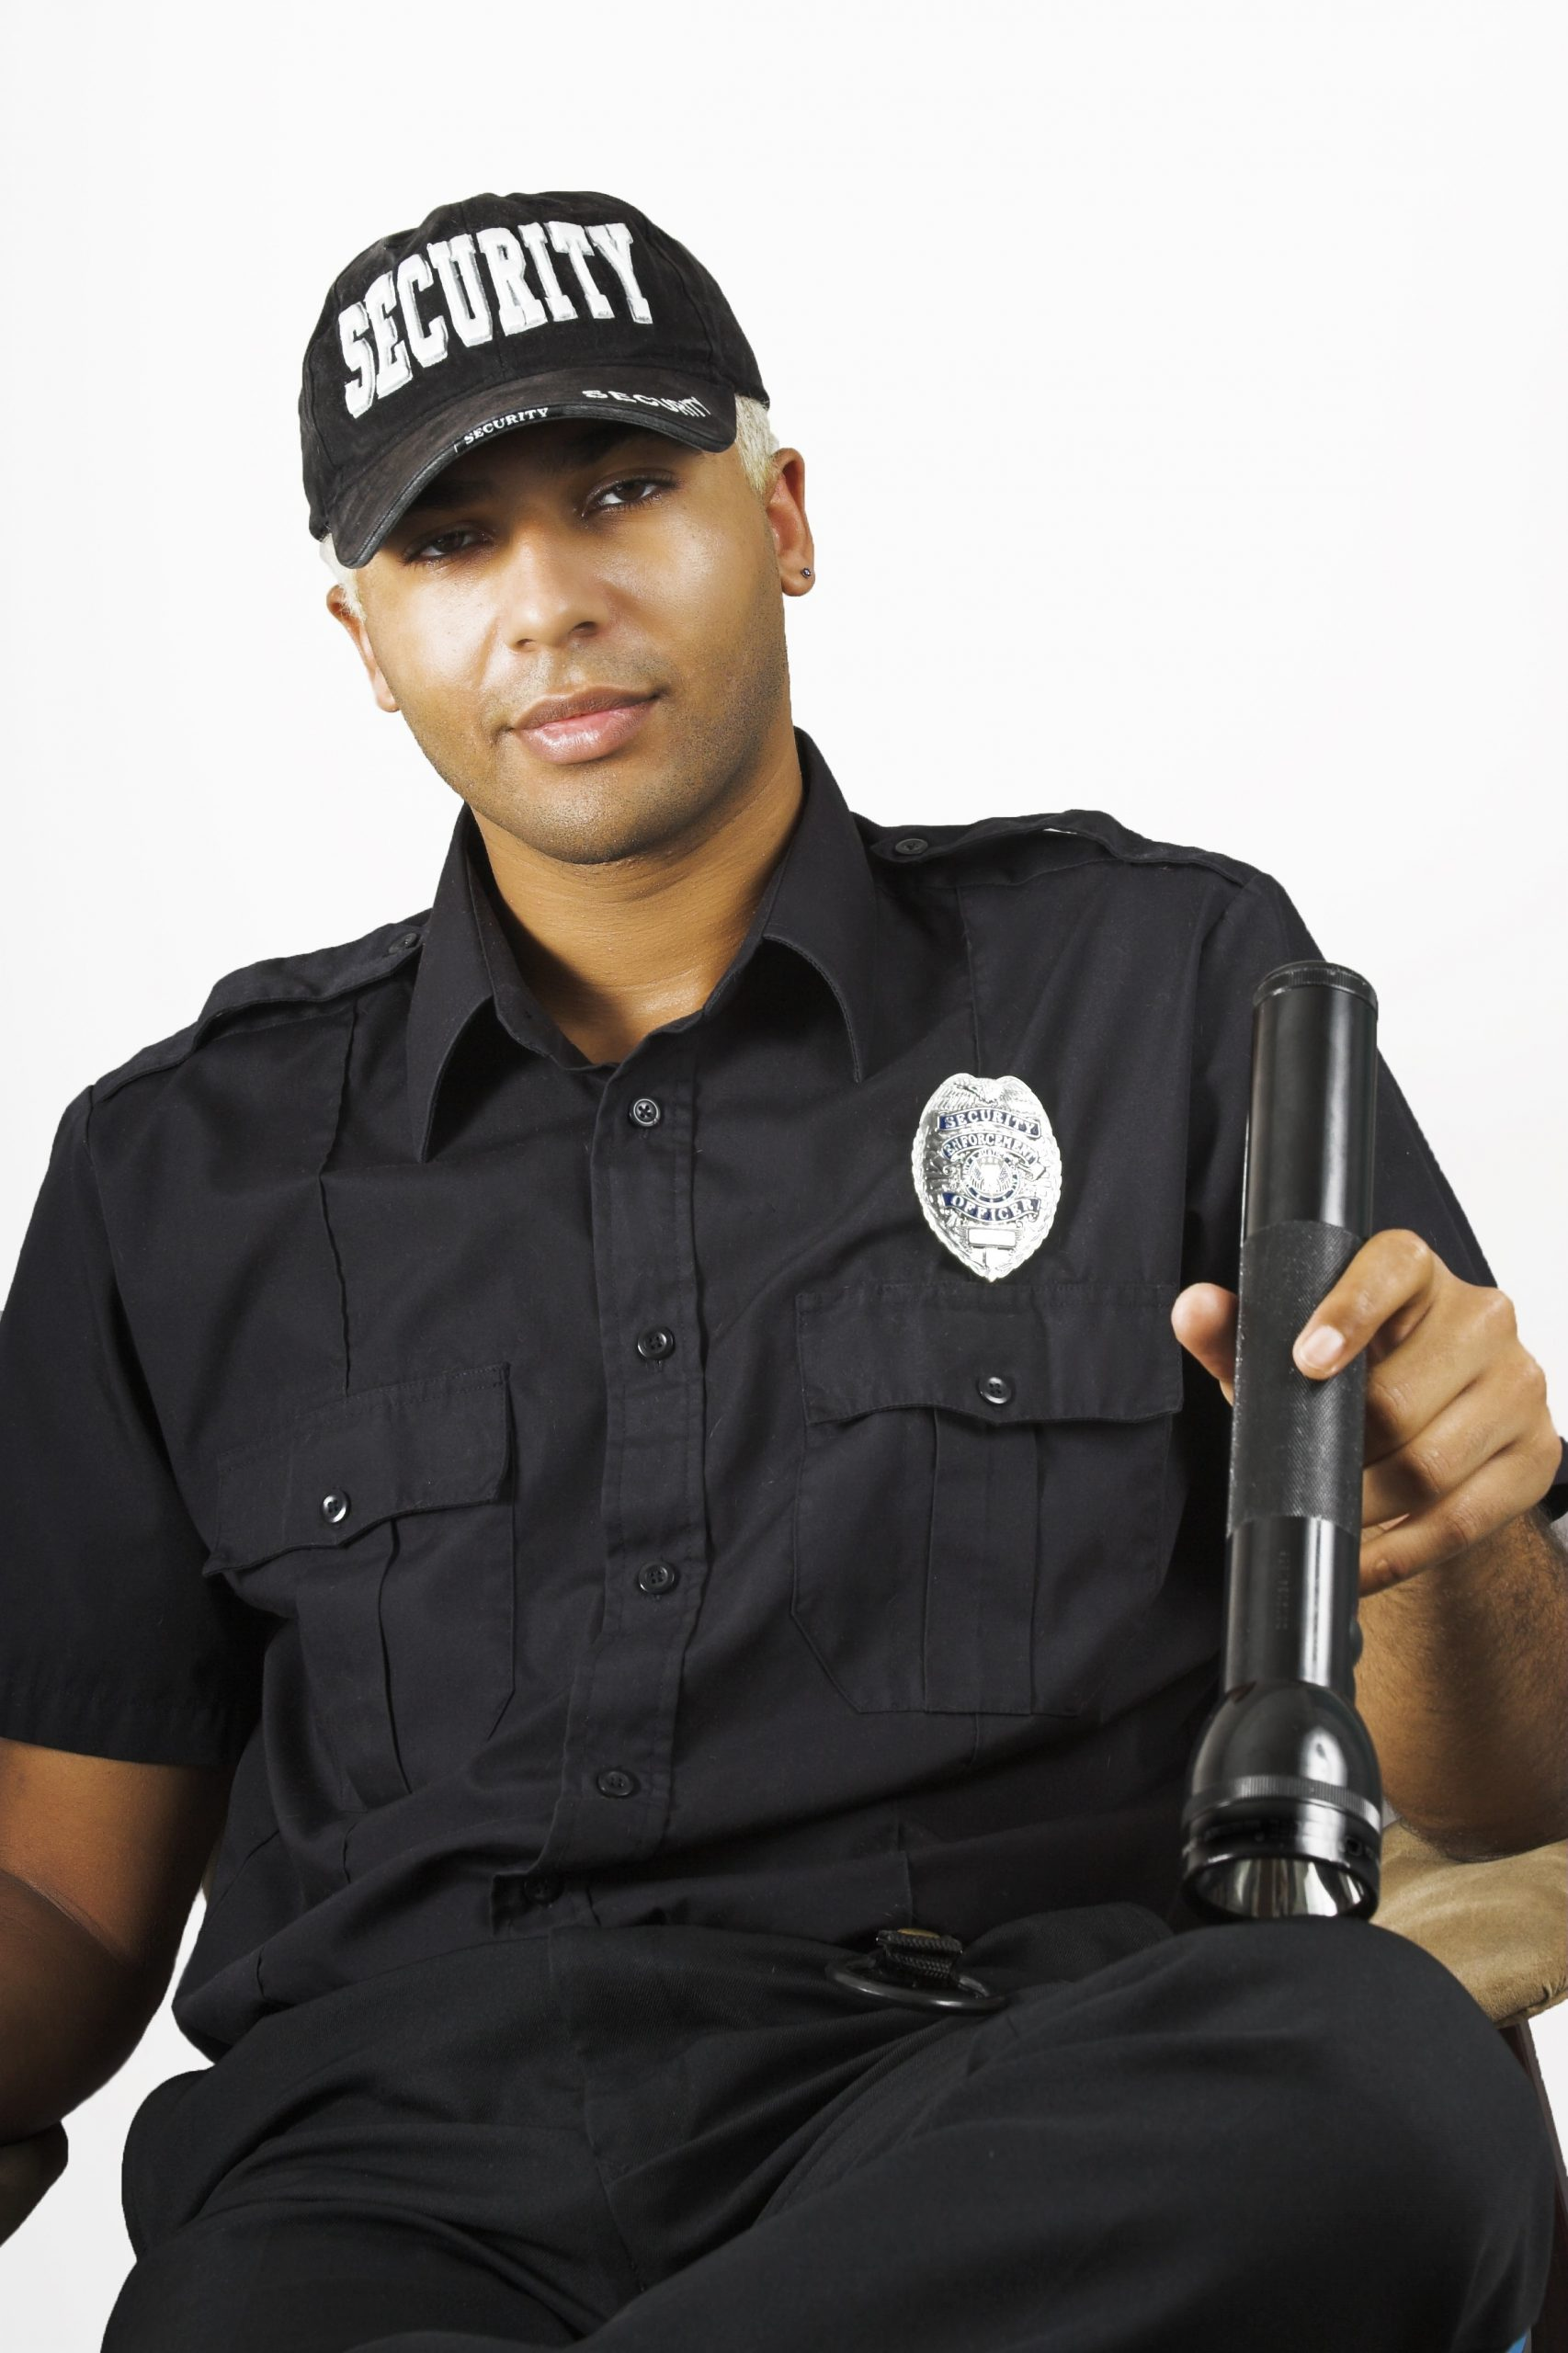 Security Guard holding a flashlight